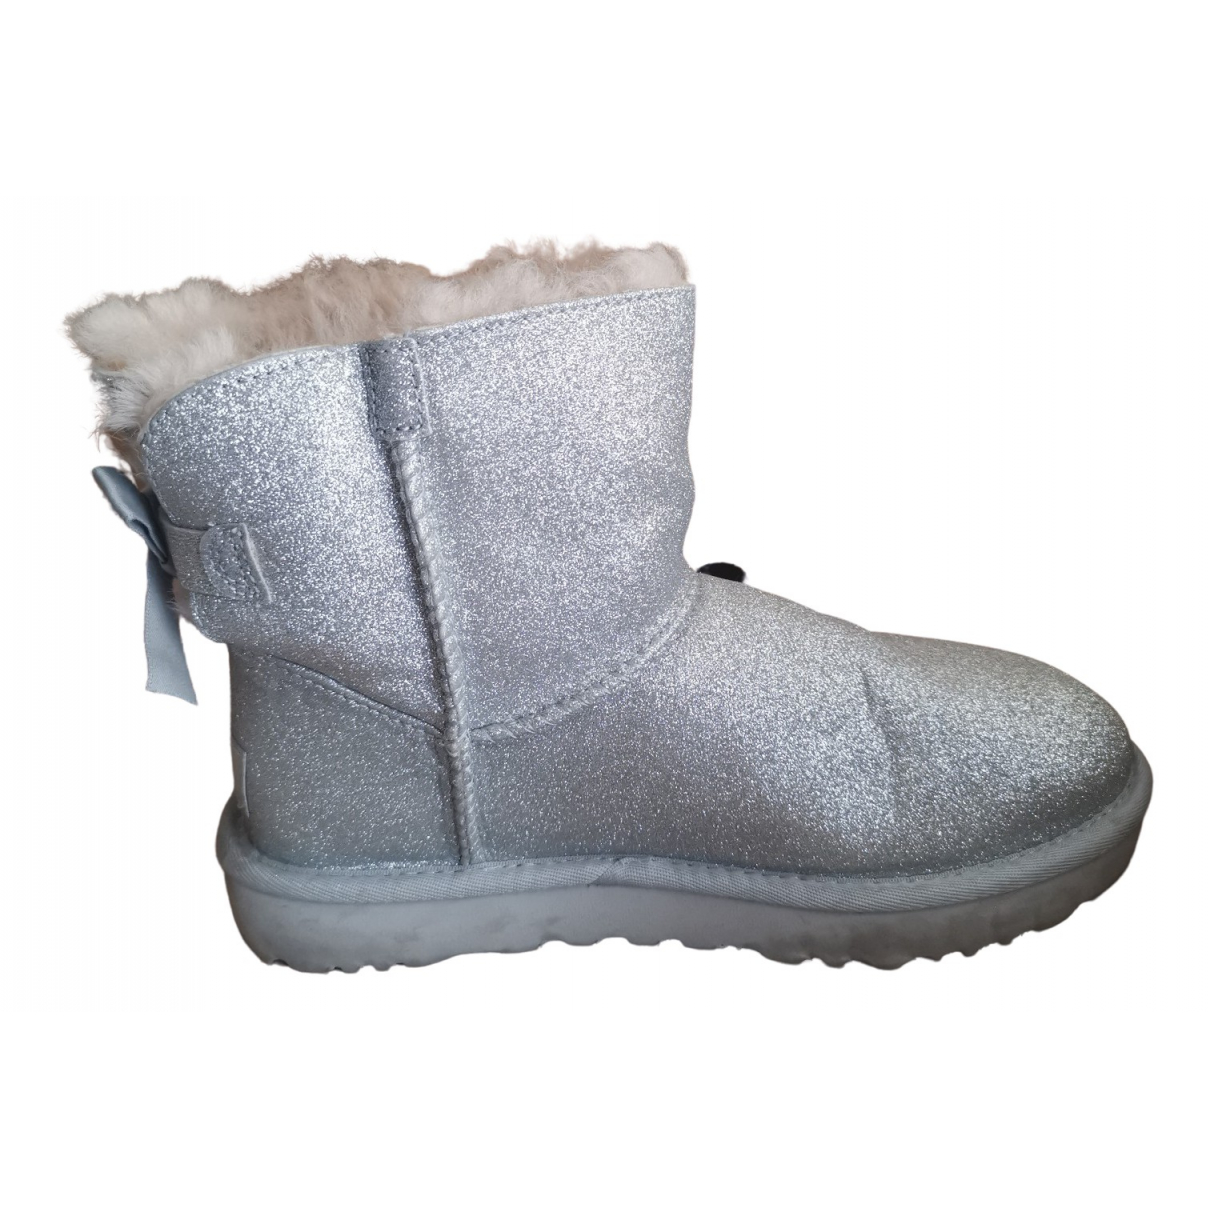 Ugg \N Silver Leather Boots for Women 37 EU